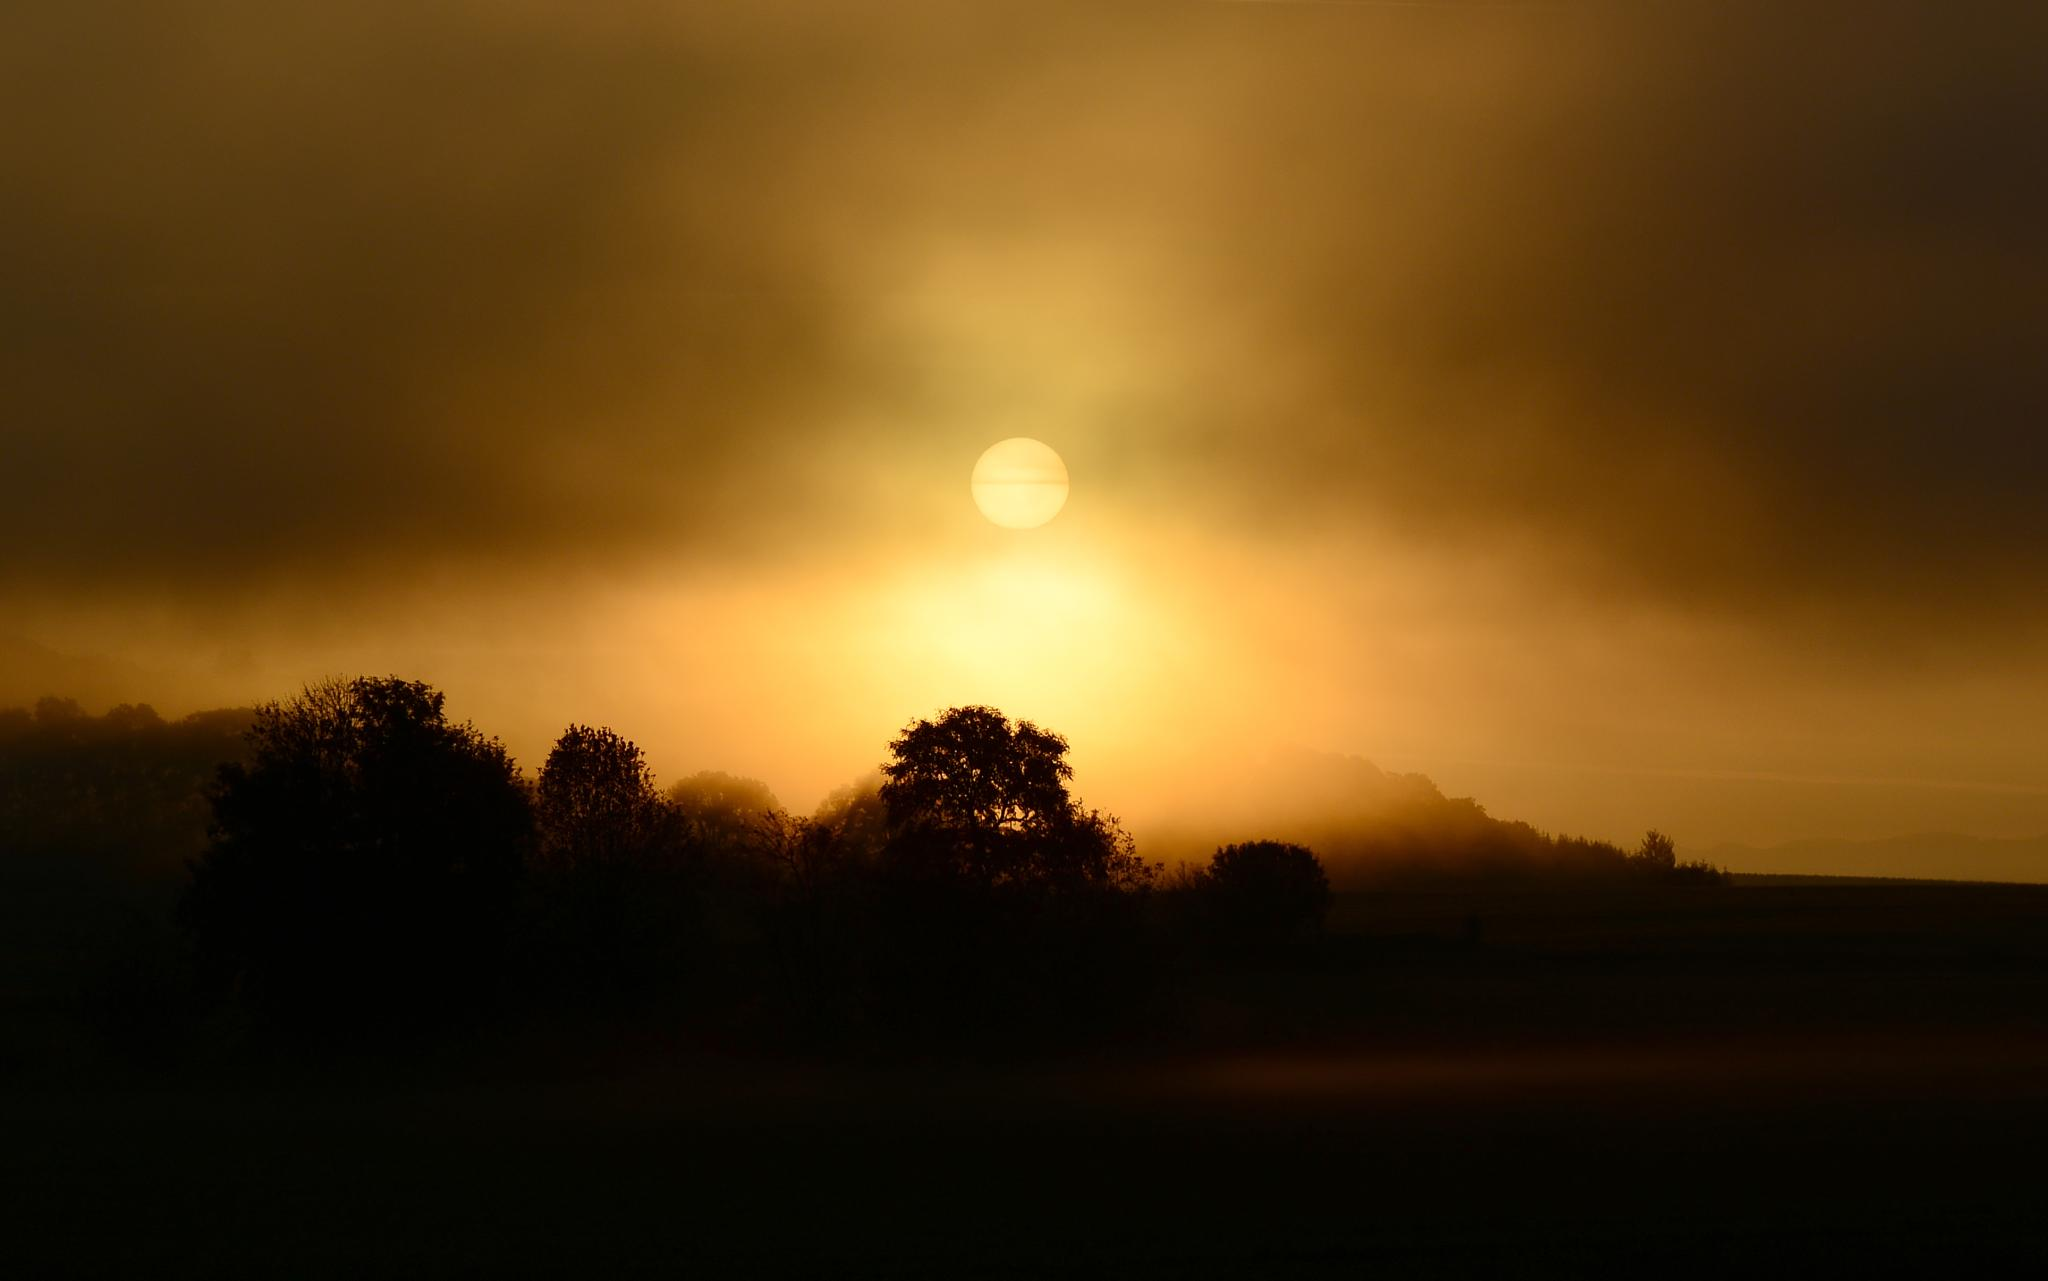 Foggy Sunrise by Don Wilder